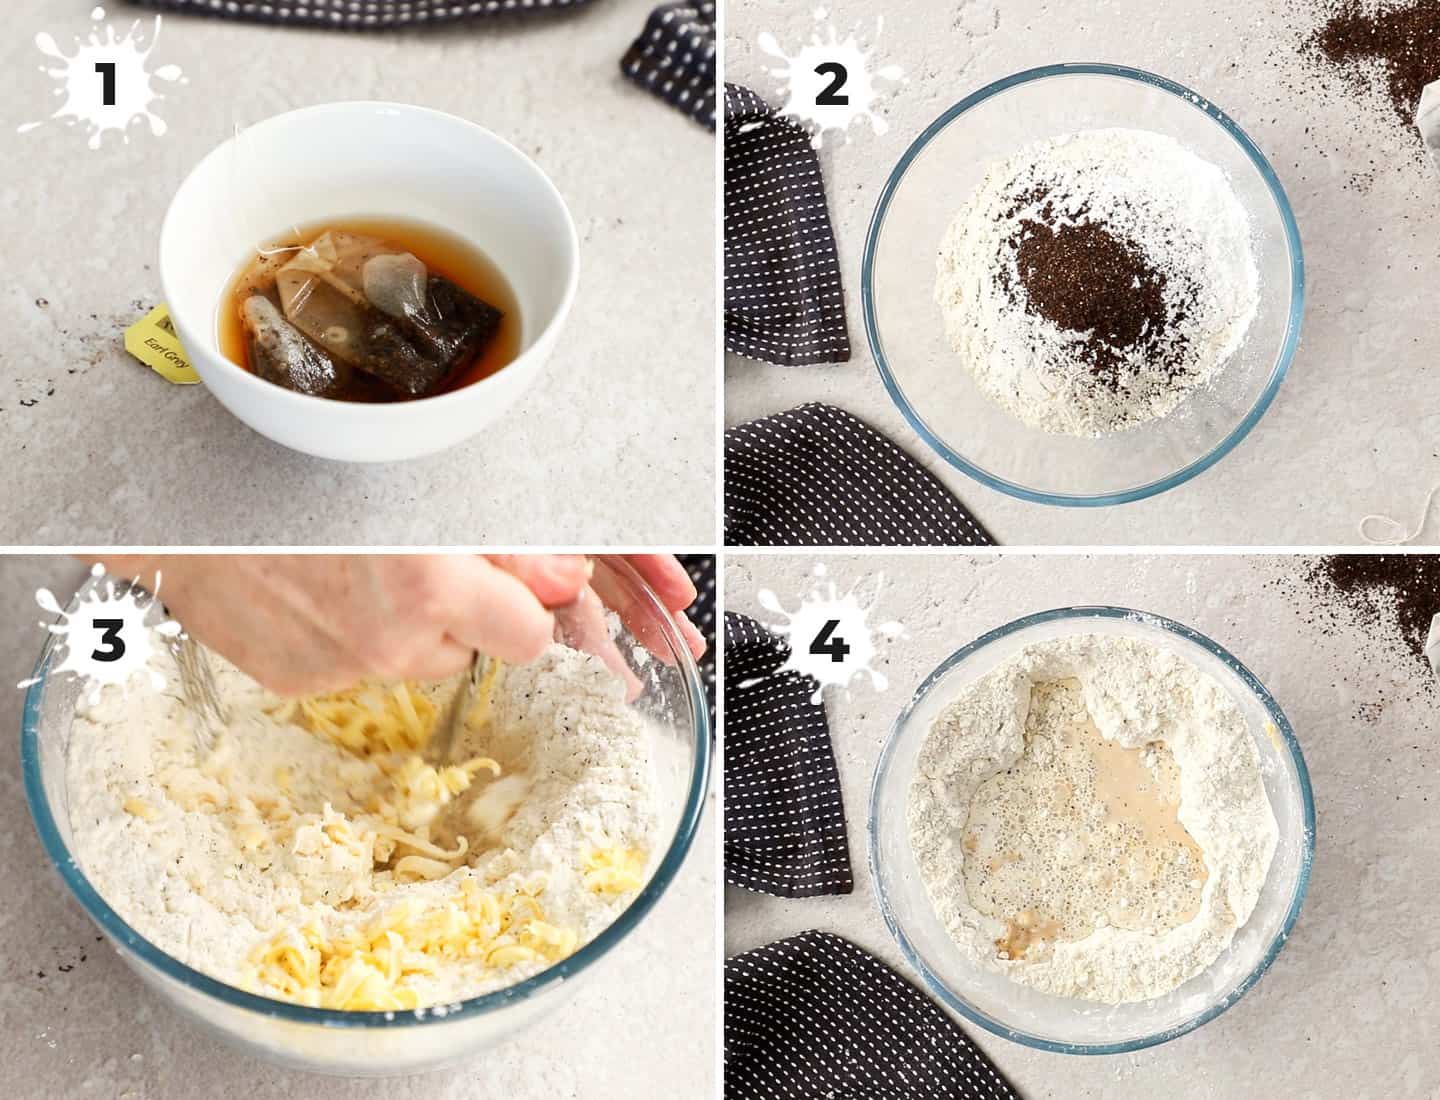 A collage of 4 images showing how to combine the scone dough.